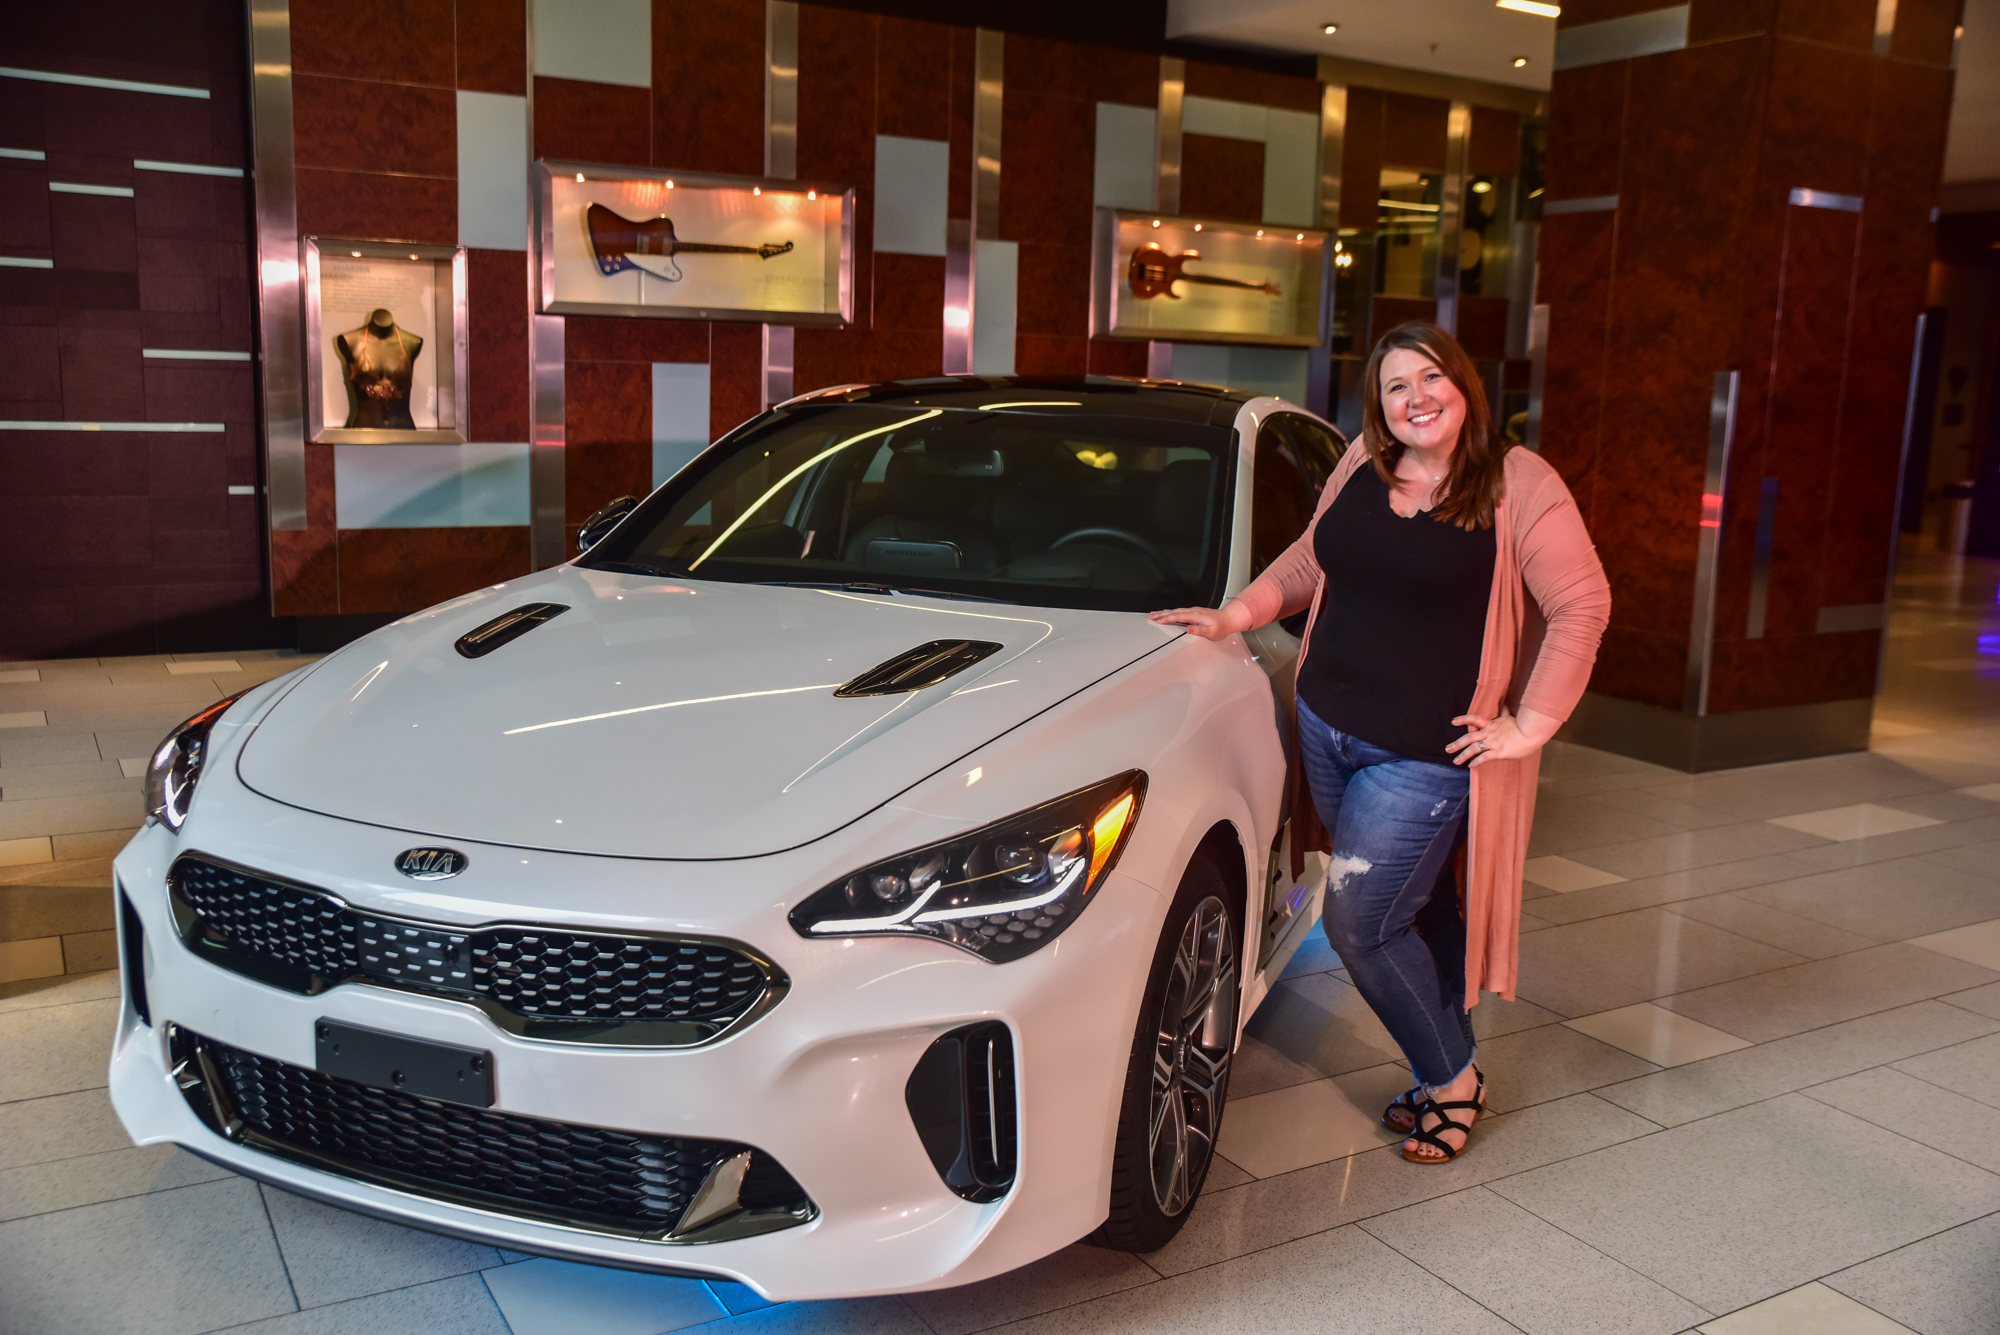 Cielo Roth Photography. Alice Chase with the new Kia Stinger.